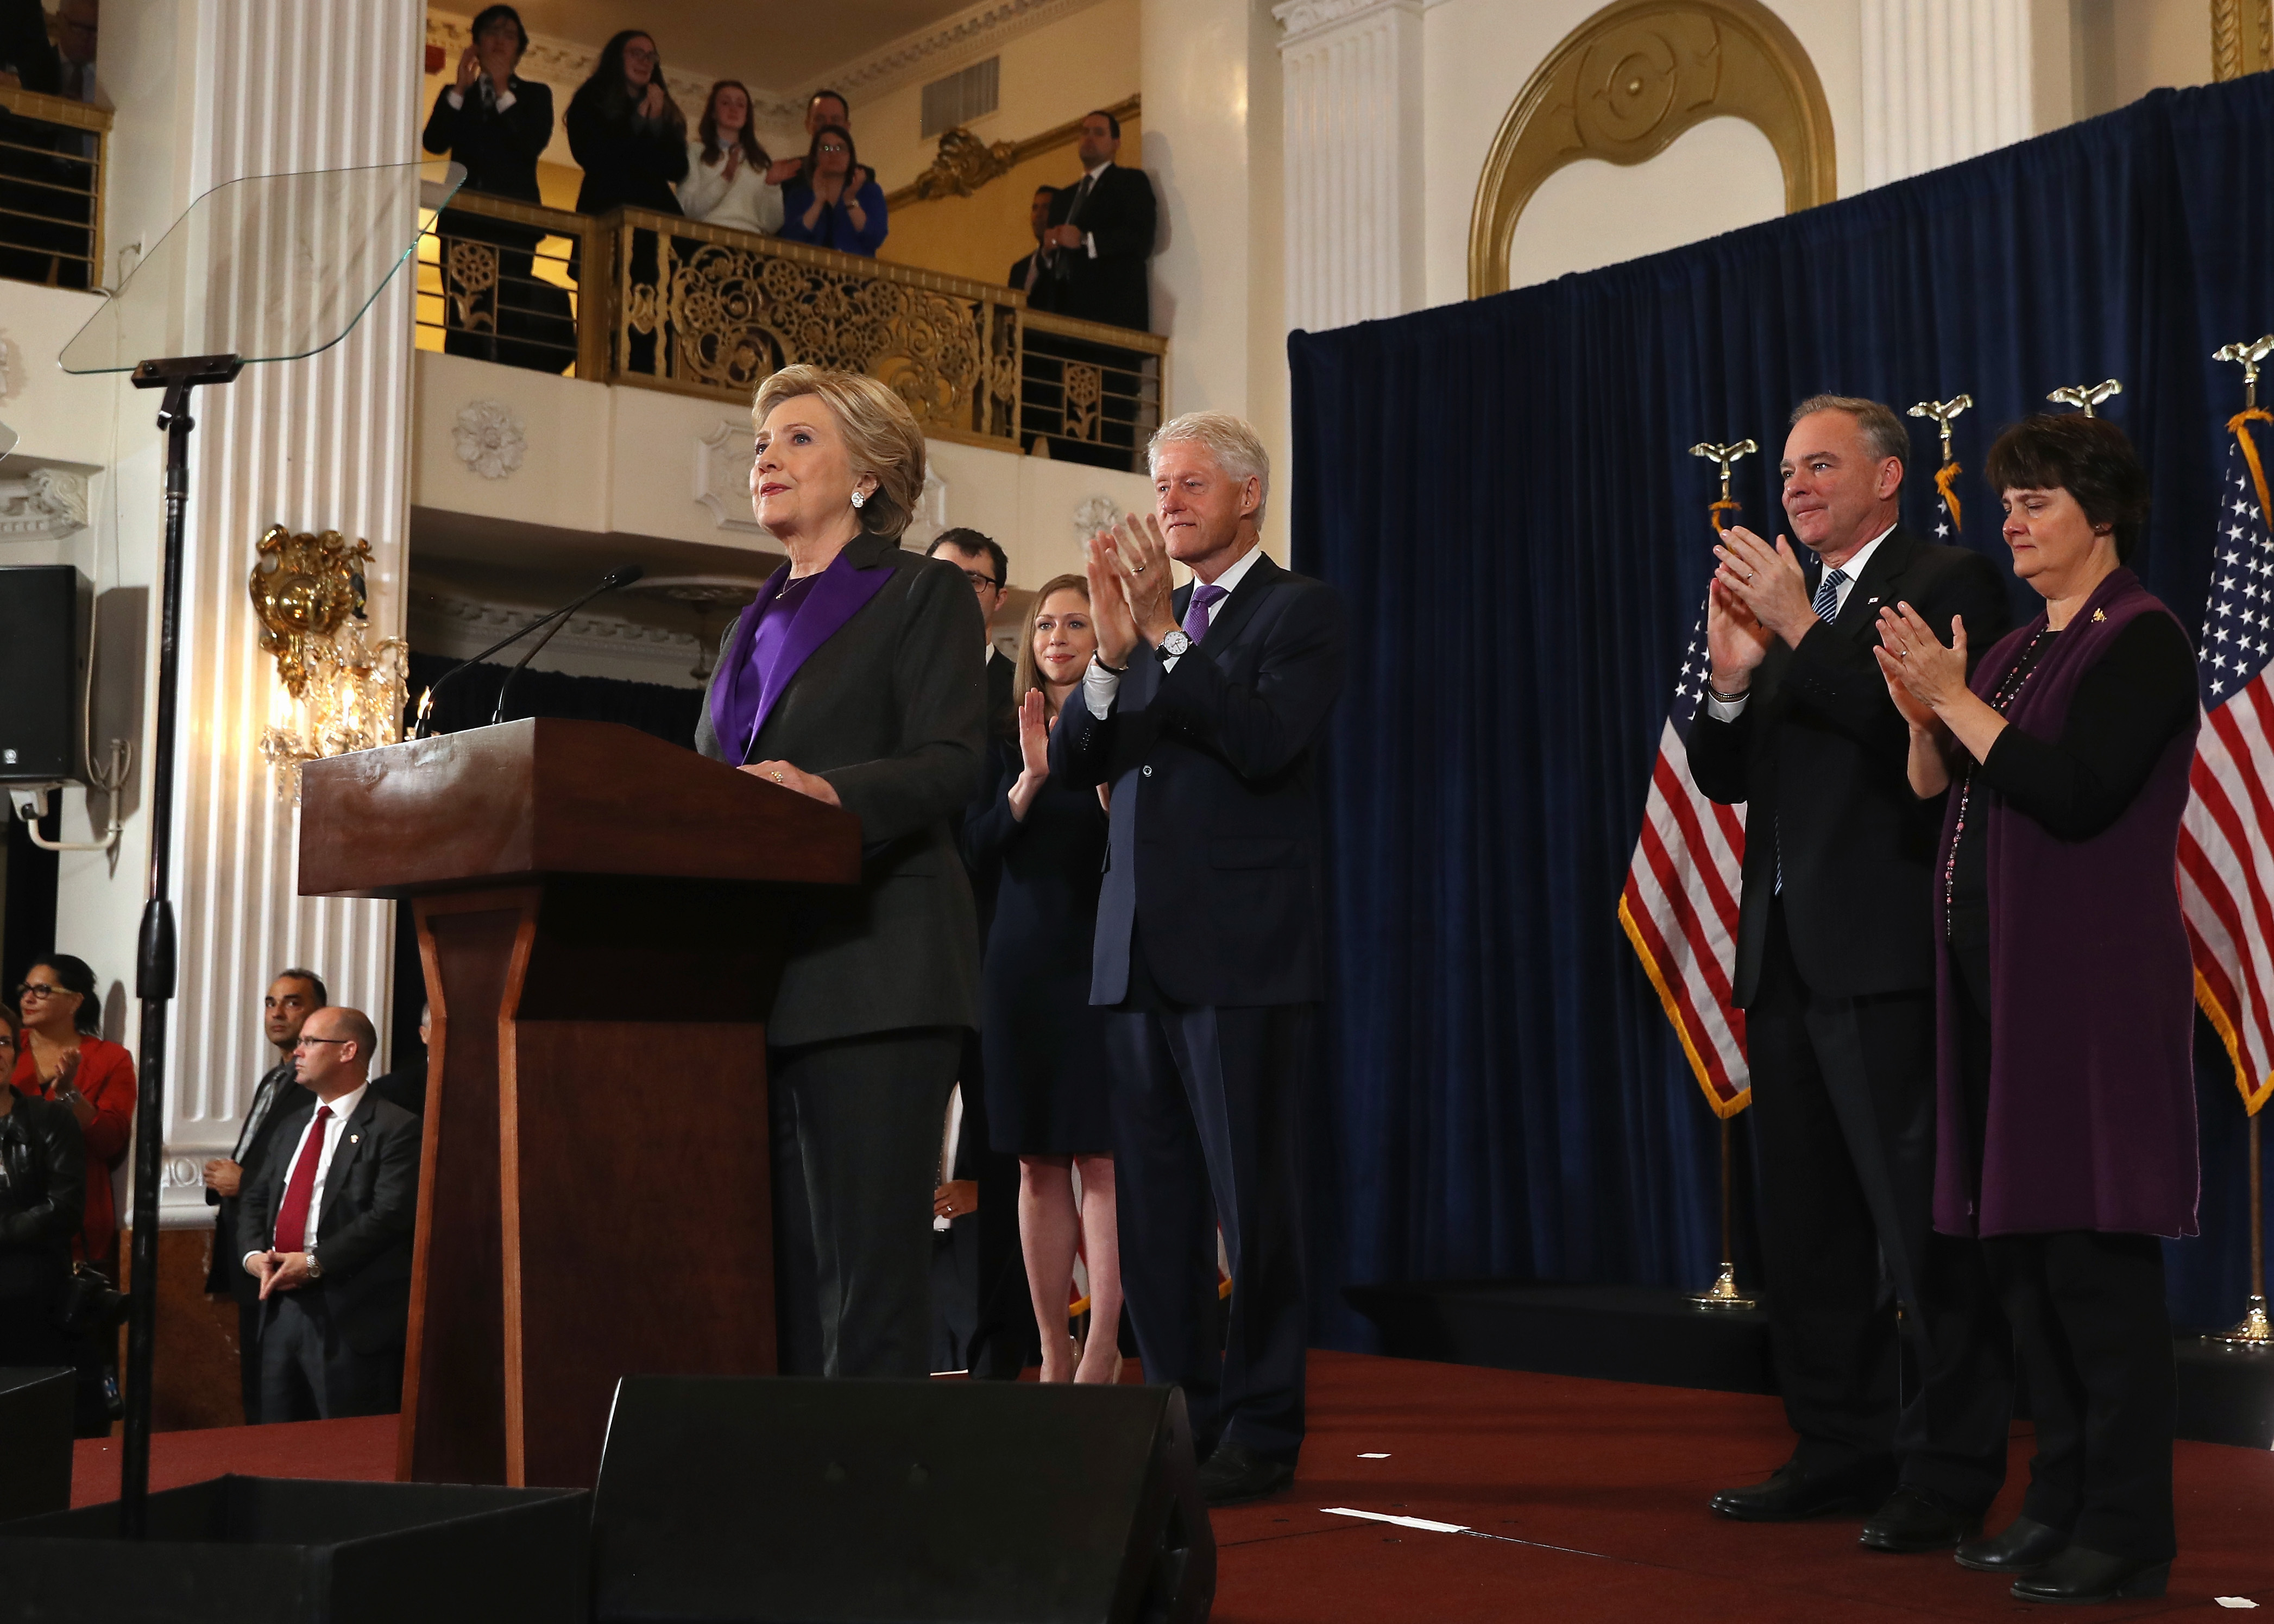 Former Secretary of State Hillary Clinton thanked Pansuit Nation indirectly, while wearing her iconic pantsuit on stage Wednesday.